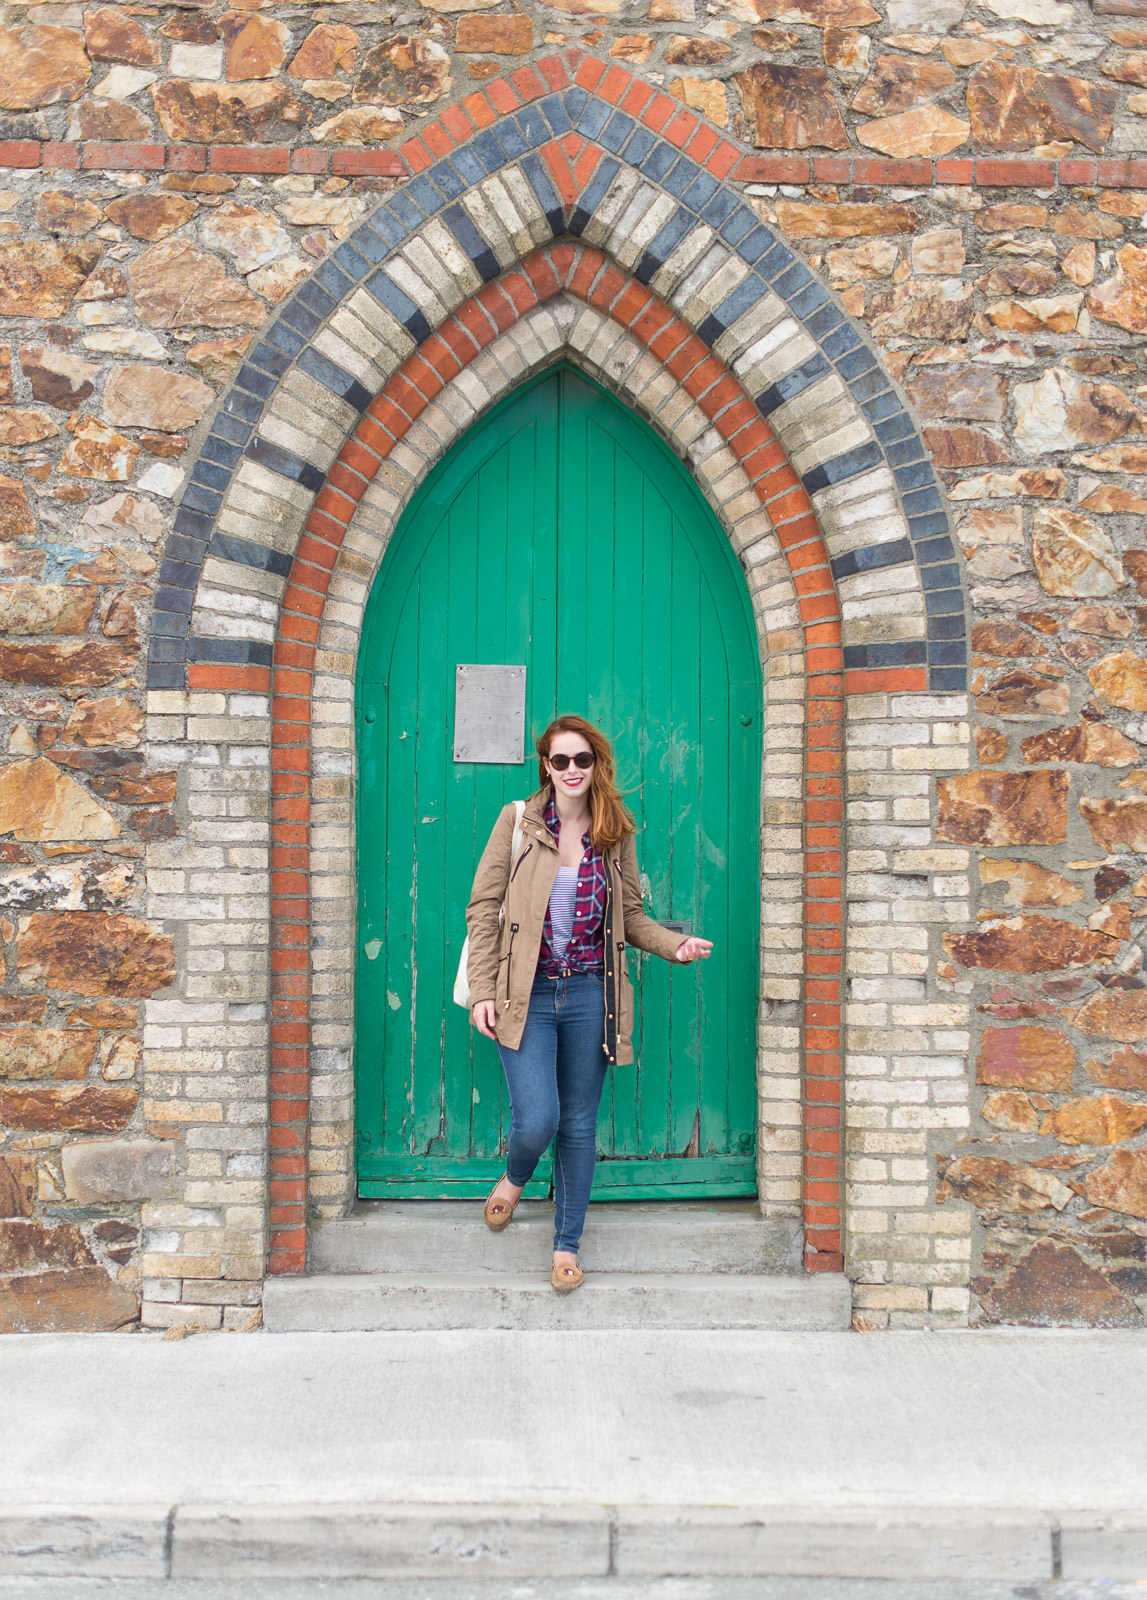 Blog-Mode-And-The-City-Lifestyle-Long-Week-End-Irlande-Howth-33